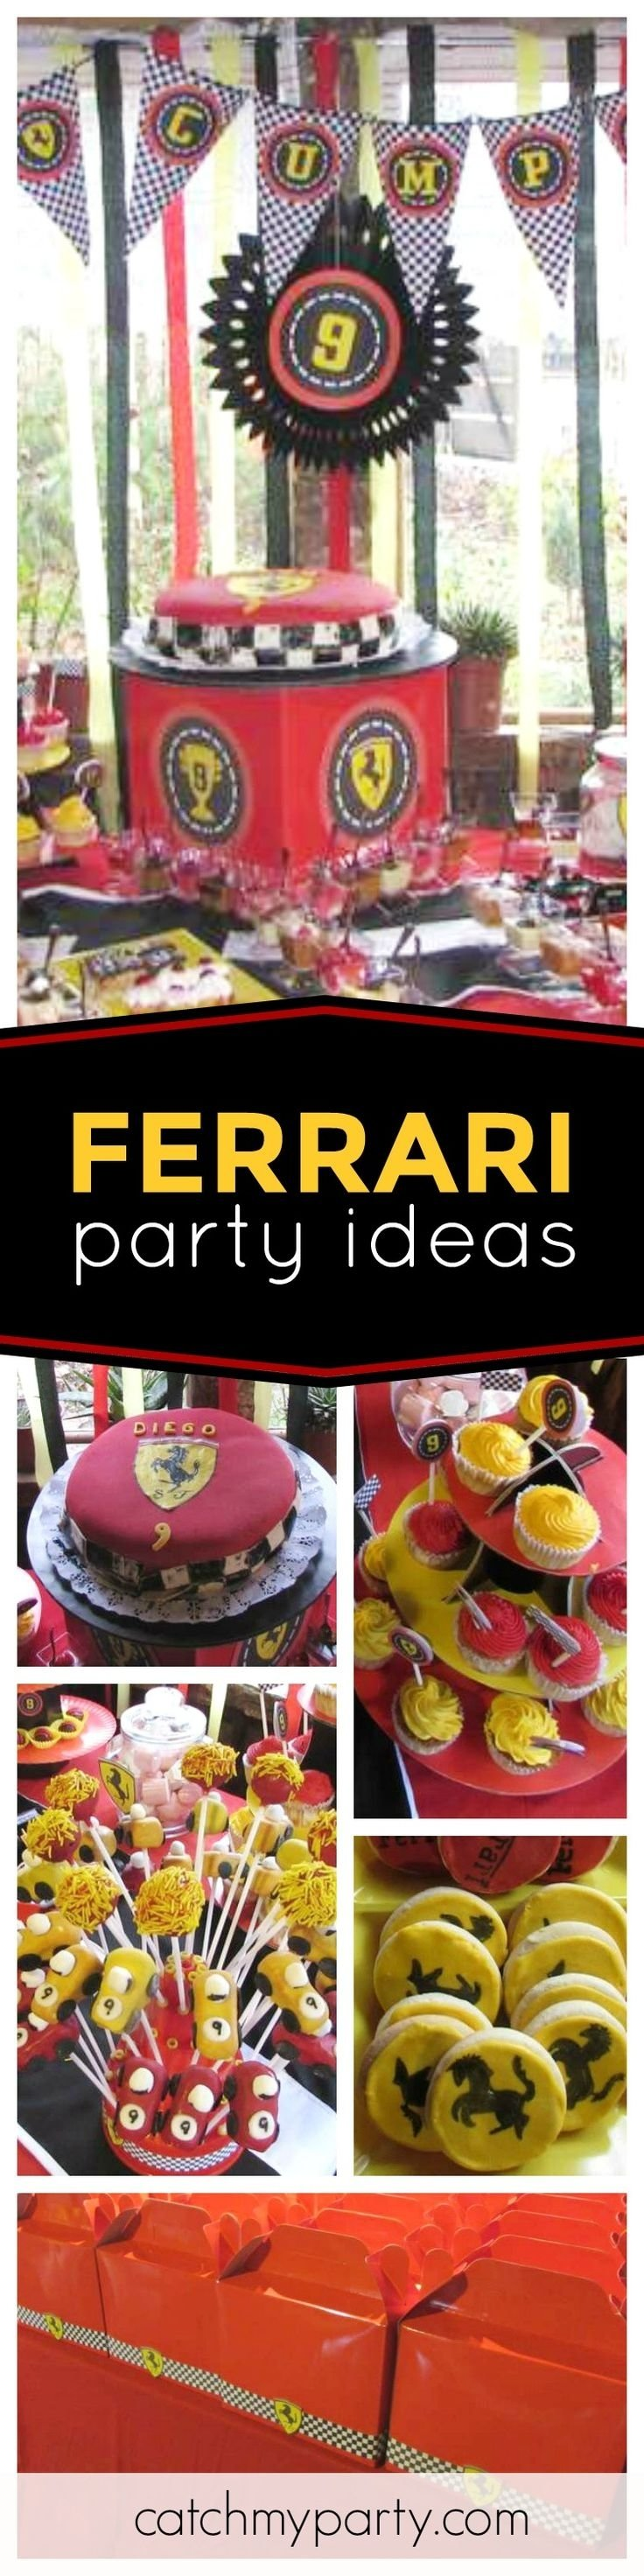 10 Cute Great Birthday Party Ideas For Adults 352 best cars and trucks party ideas images on pinterest 2021